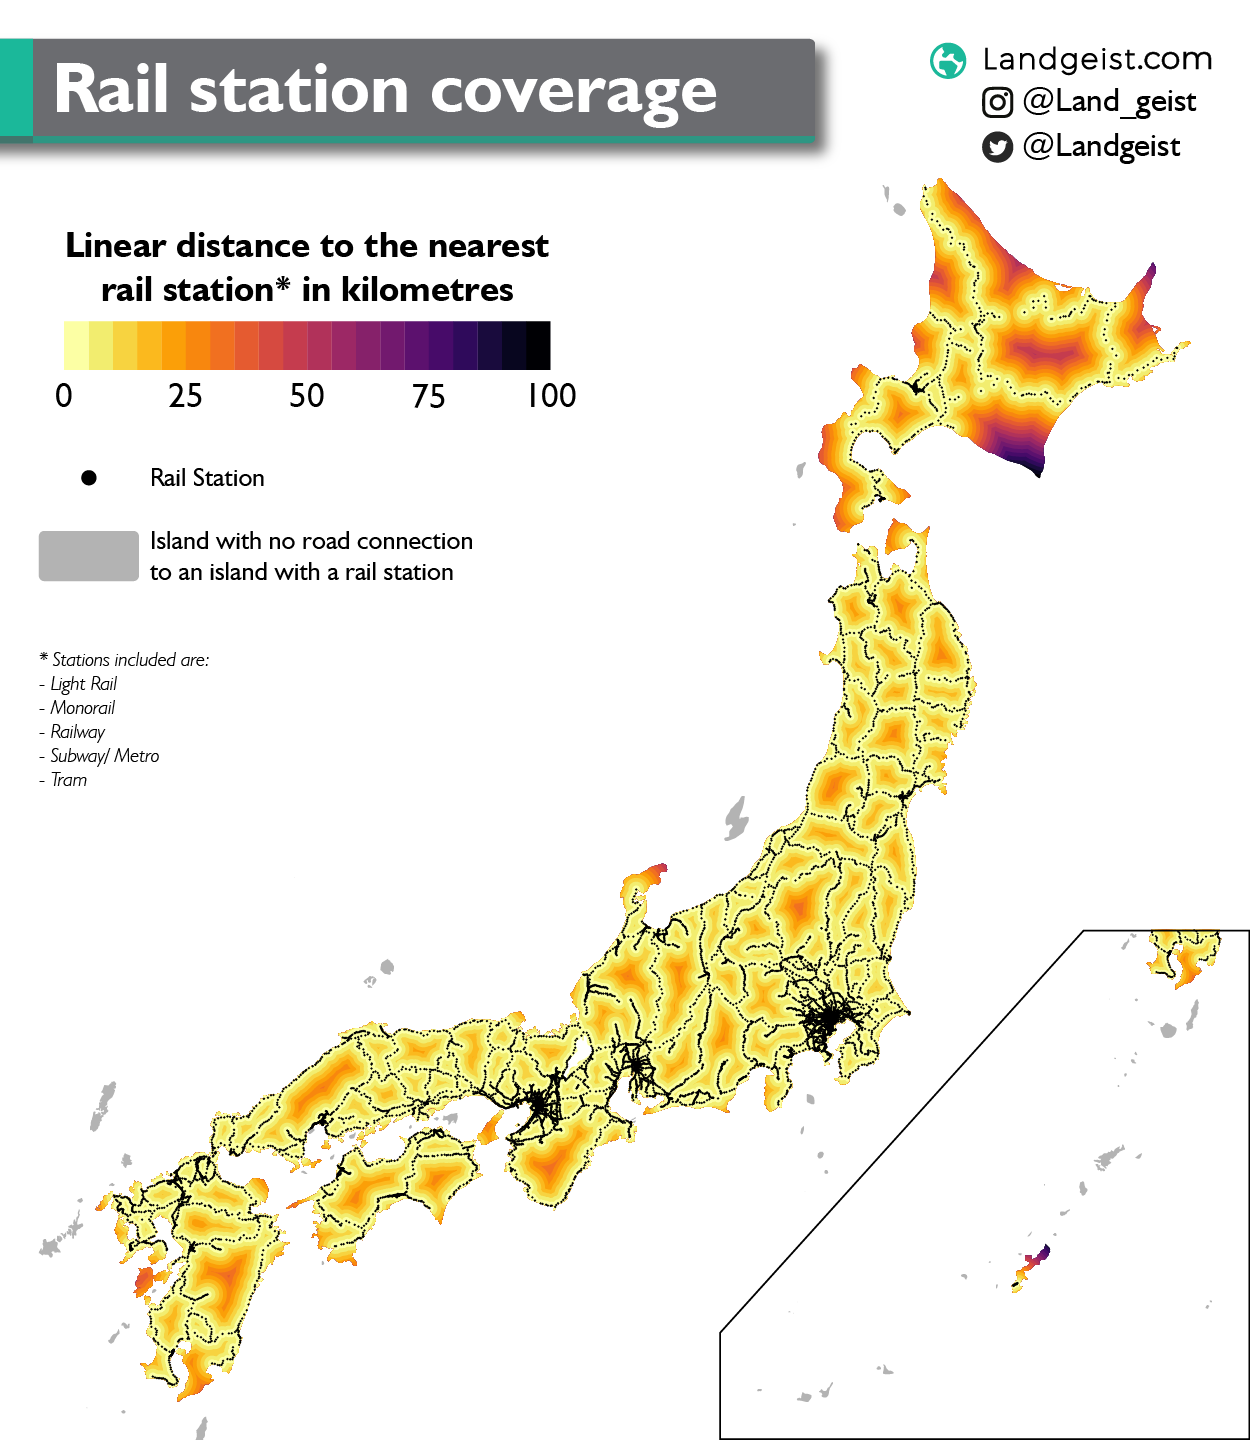 Map of Japan showing the distance to the nearest rail station.